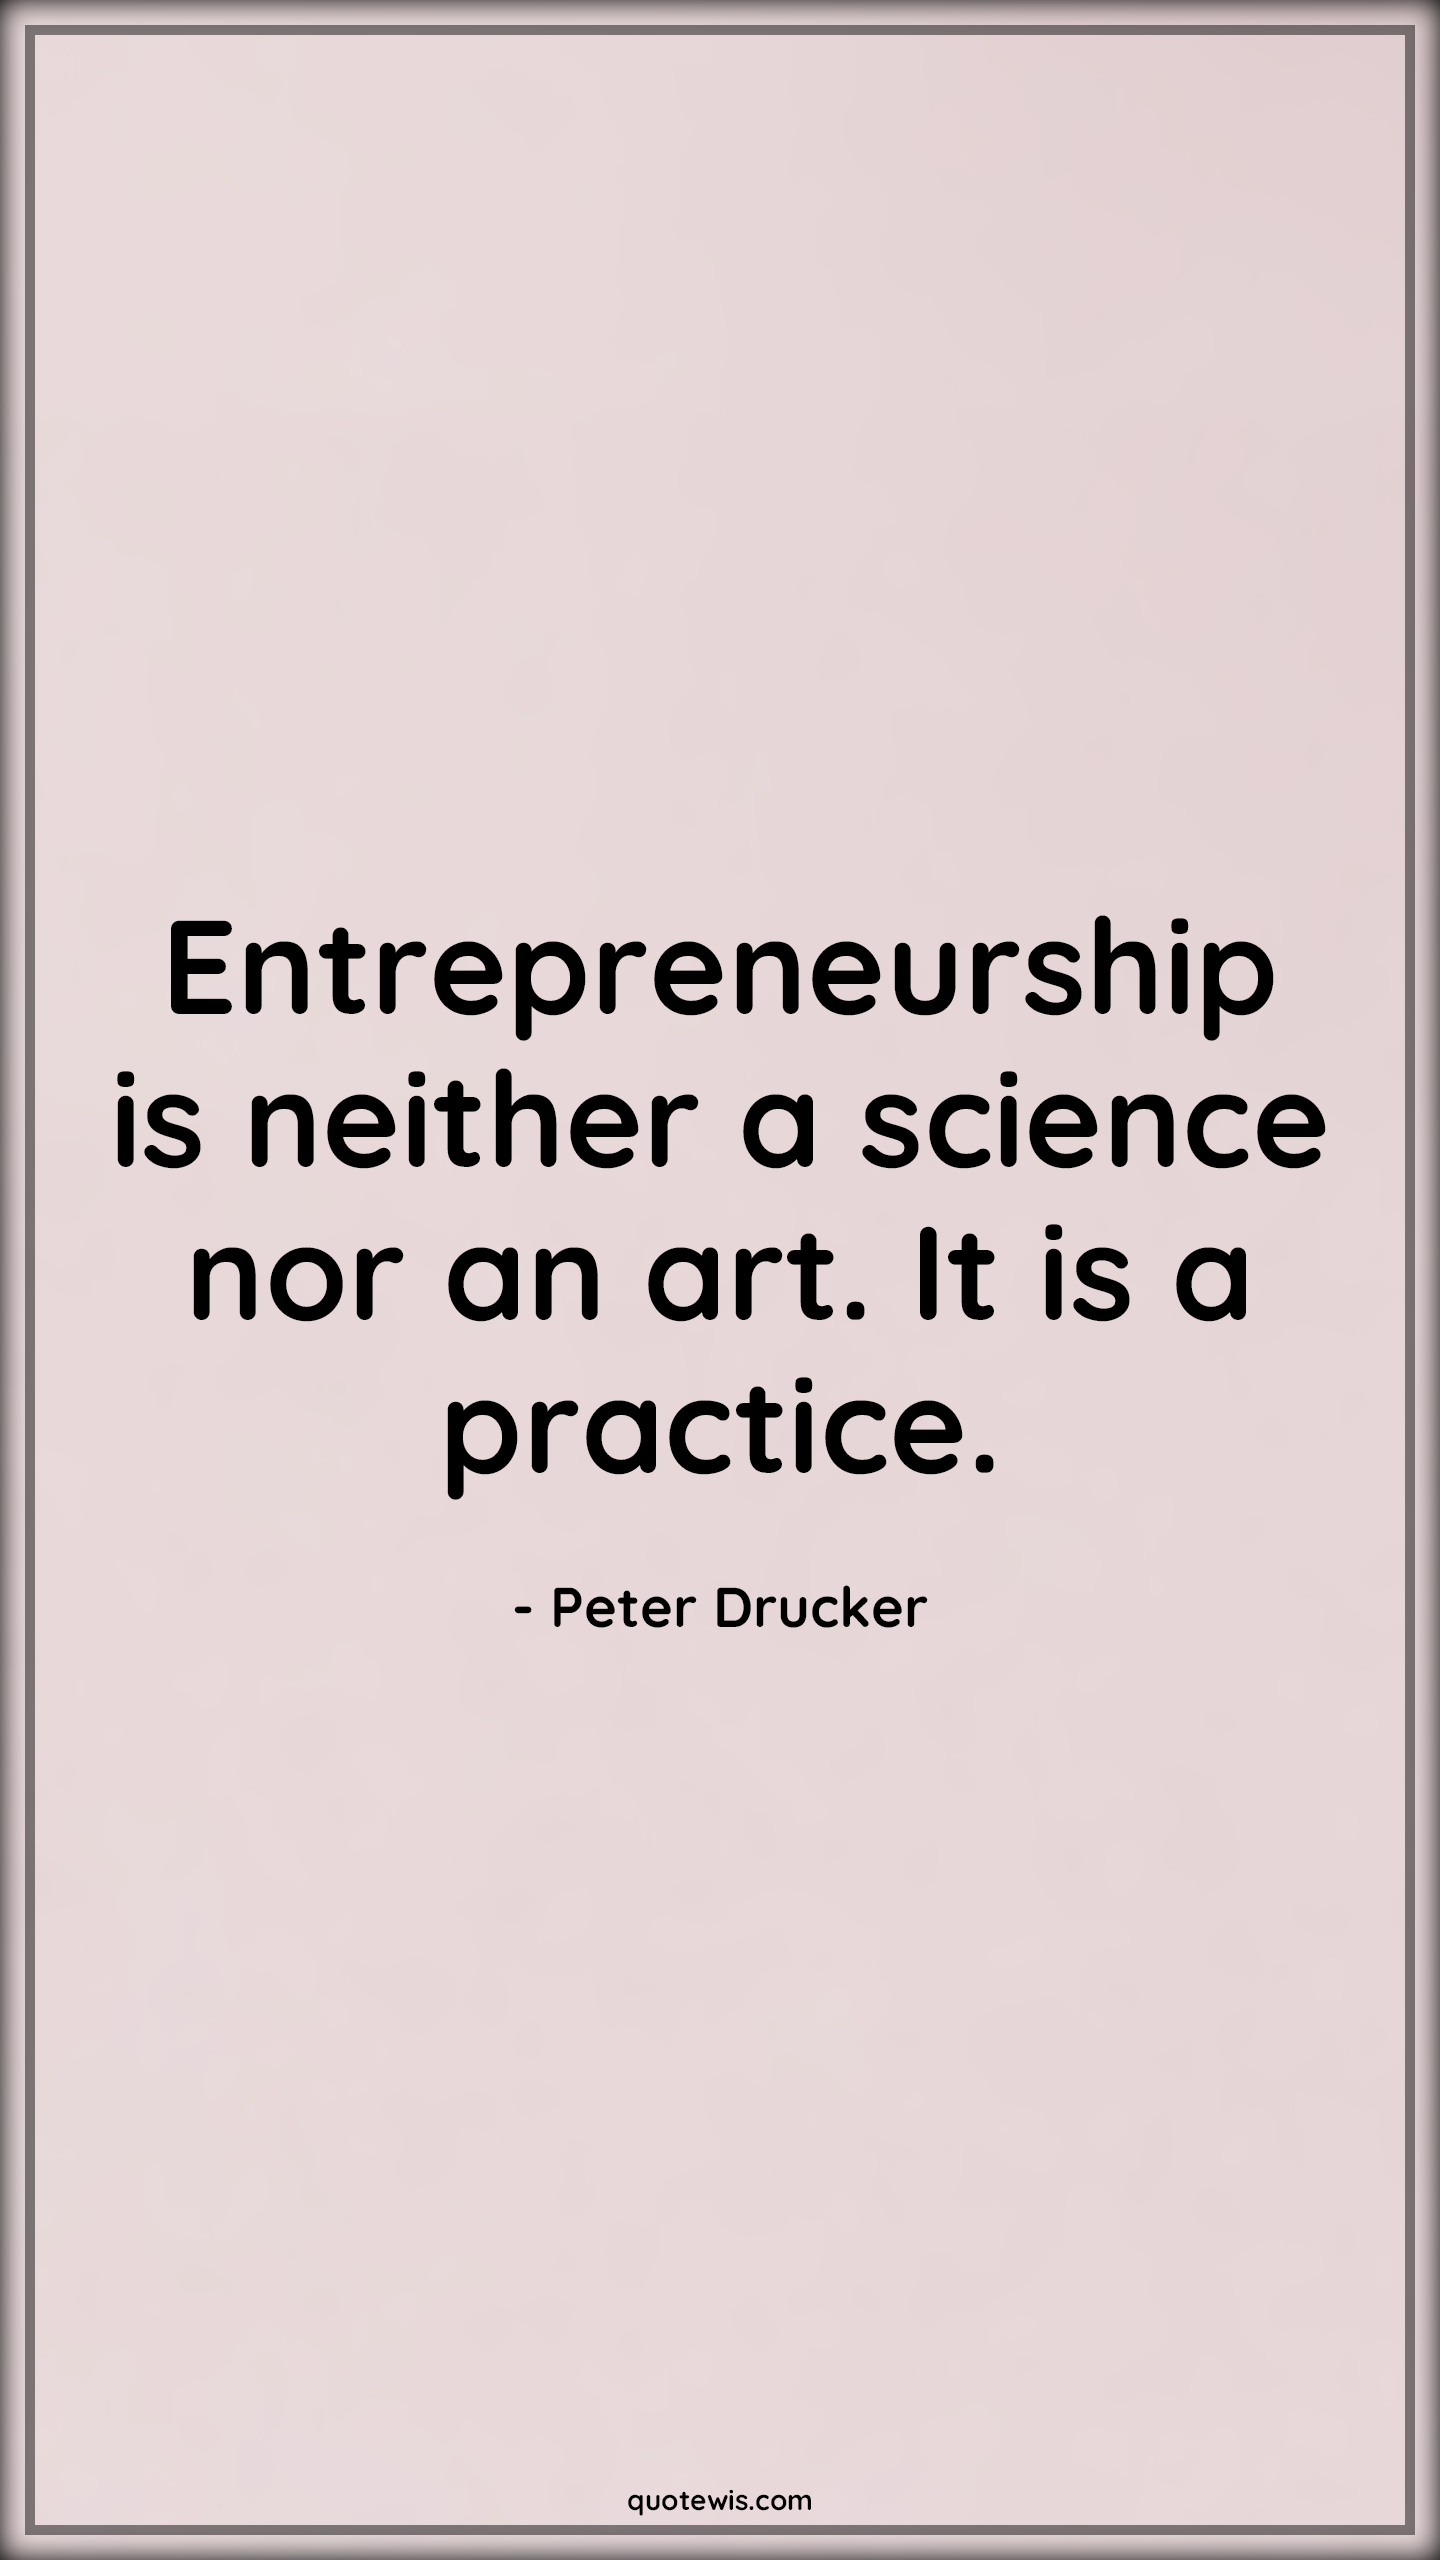 Entrepreneurship is neither a science nor an art. It is a practice.